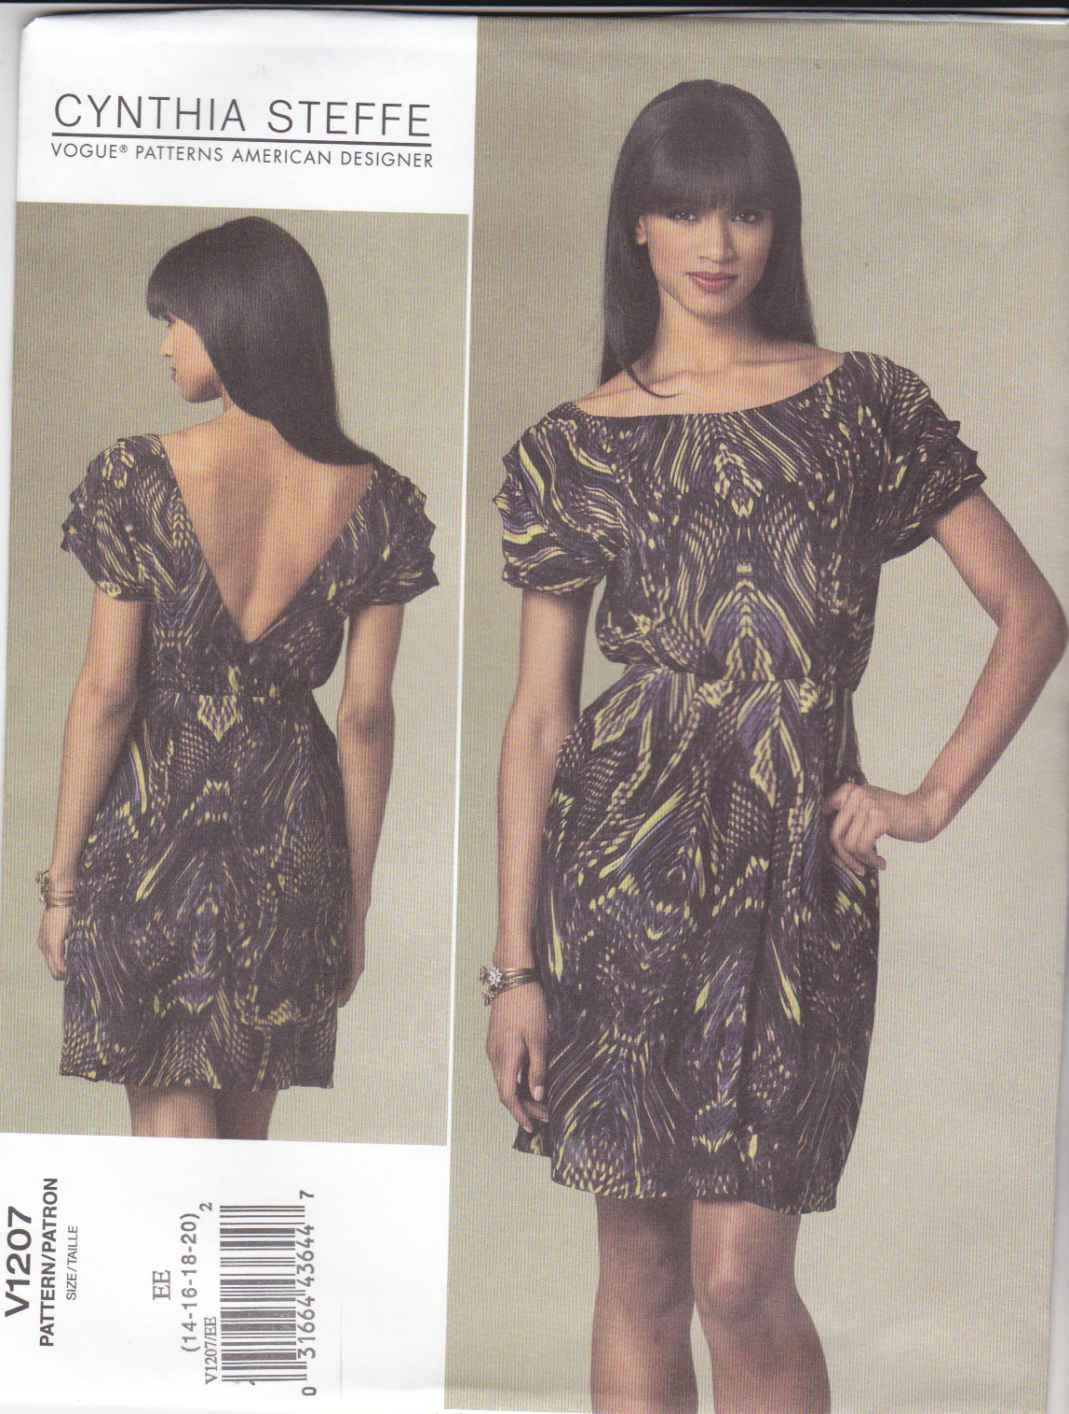 Vogue Sewing Pattern 1207 V1207 Misses Size 14-20 Cynthia Steffe Cap Sleeve A-Line Dress